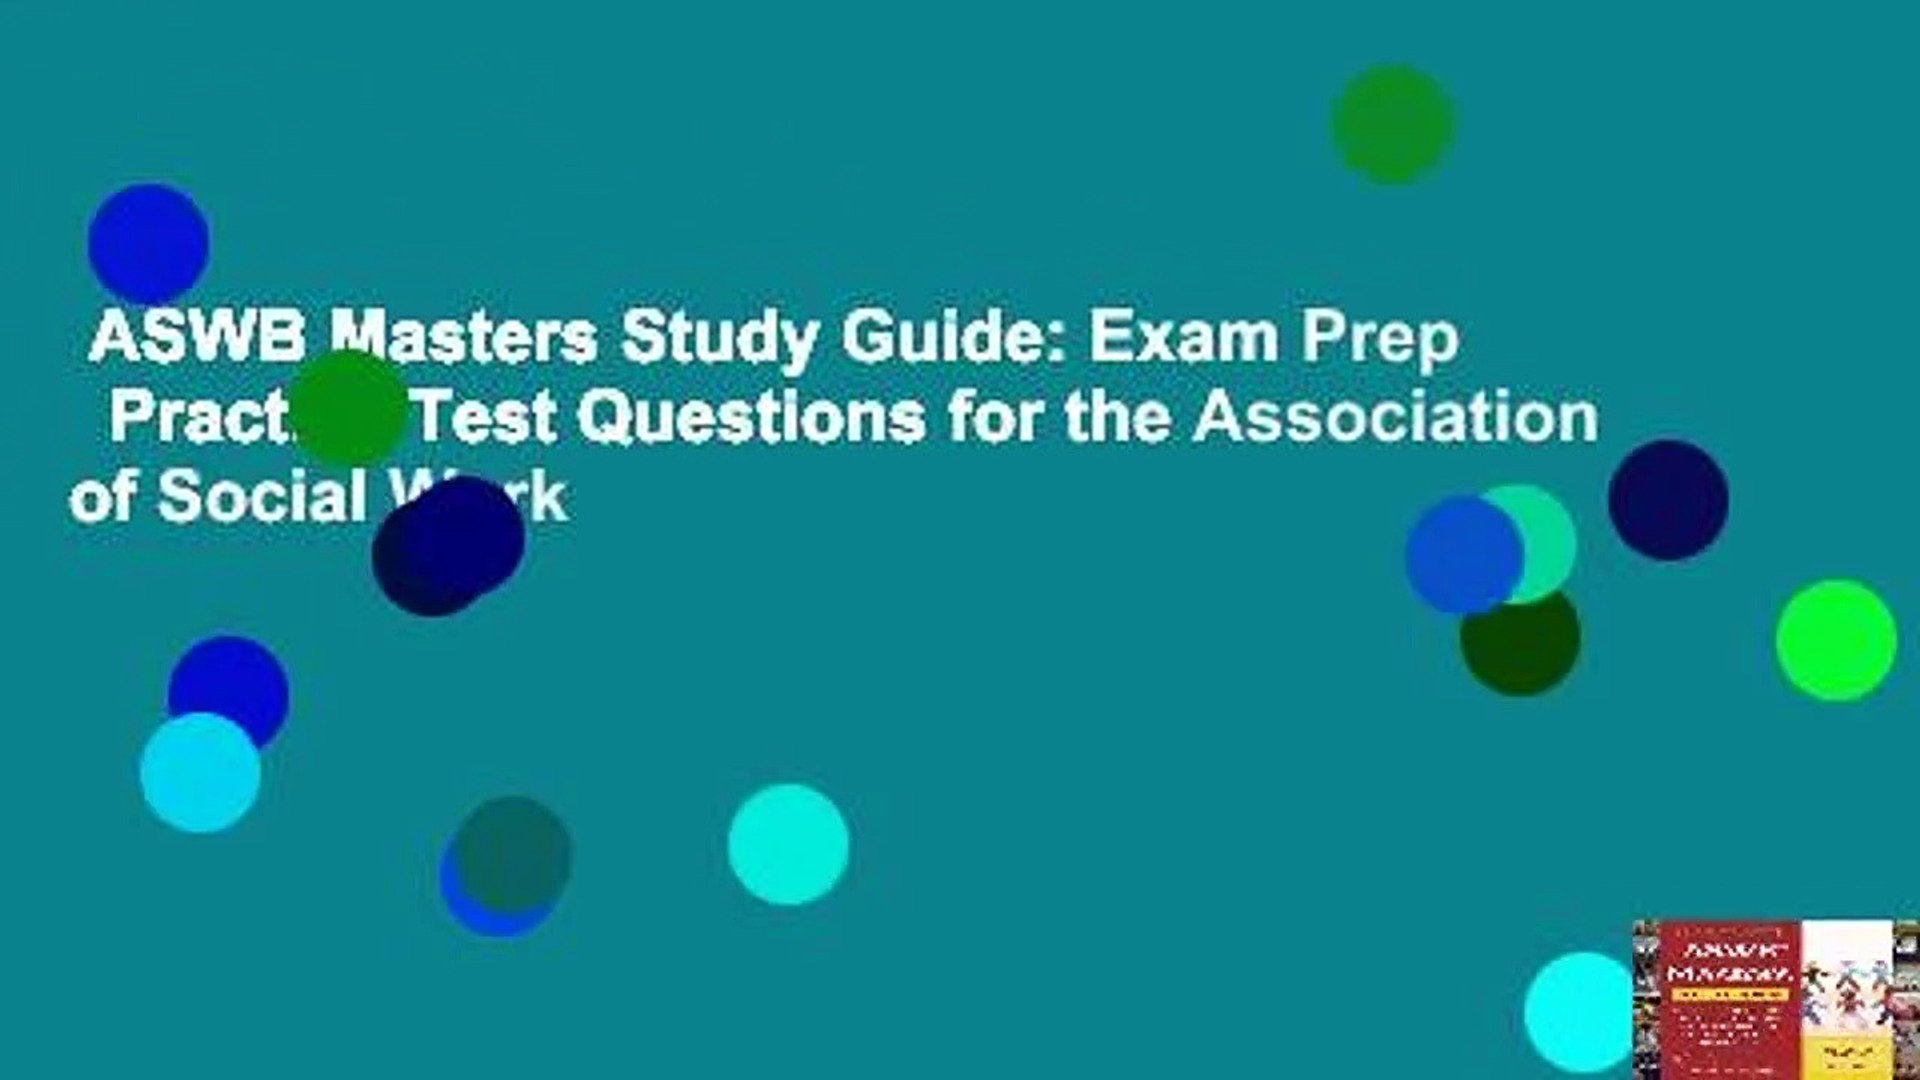 ASWB Masters Study Guide: Exam Prep   Practice Test Questions for the Association of Social Work